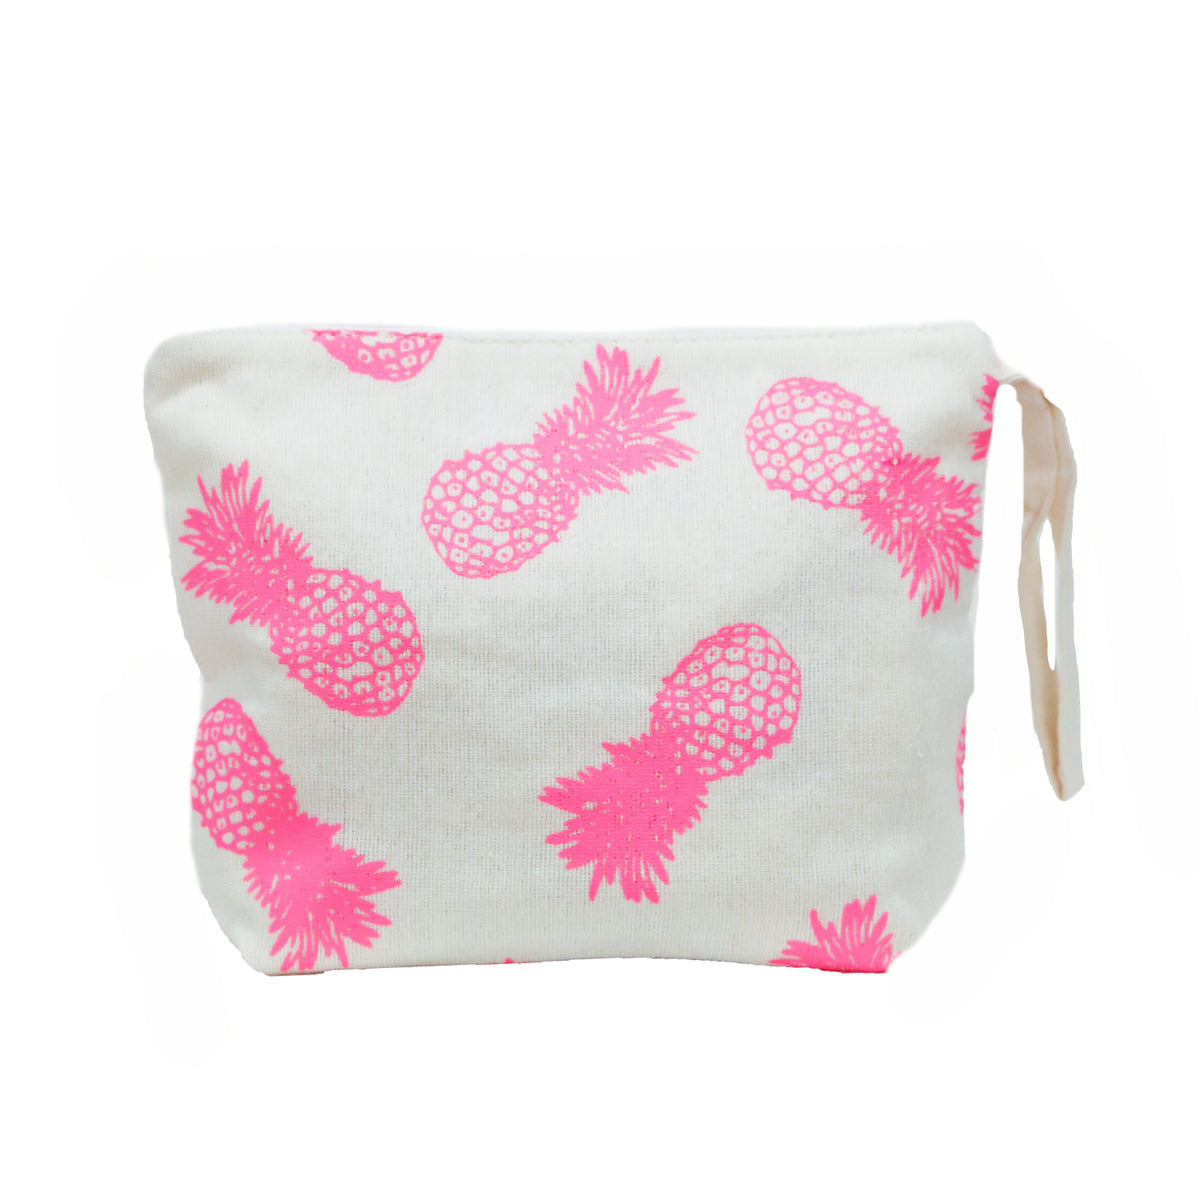 Printed Canvas Pineapple Pouch